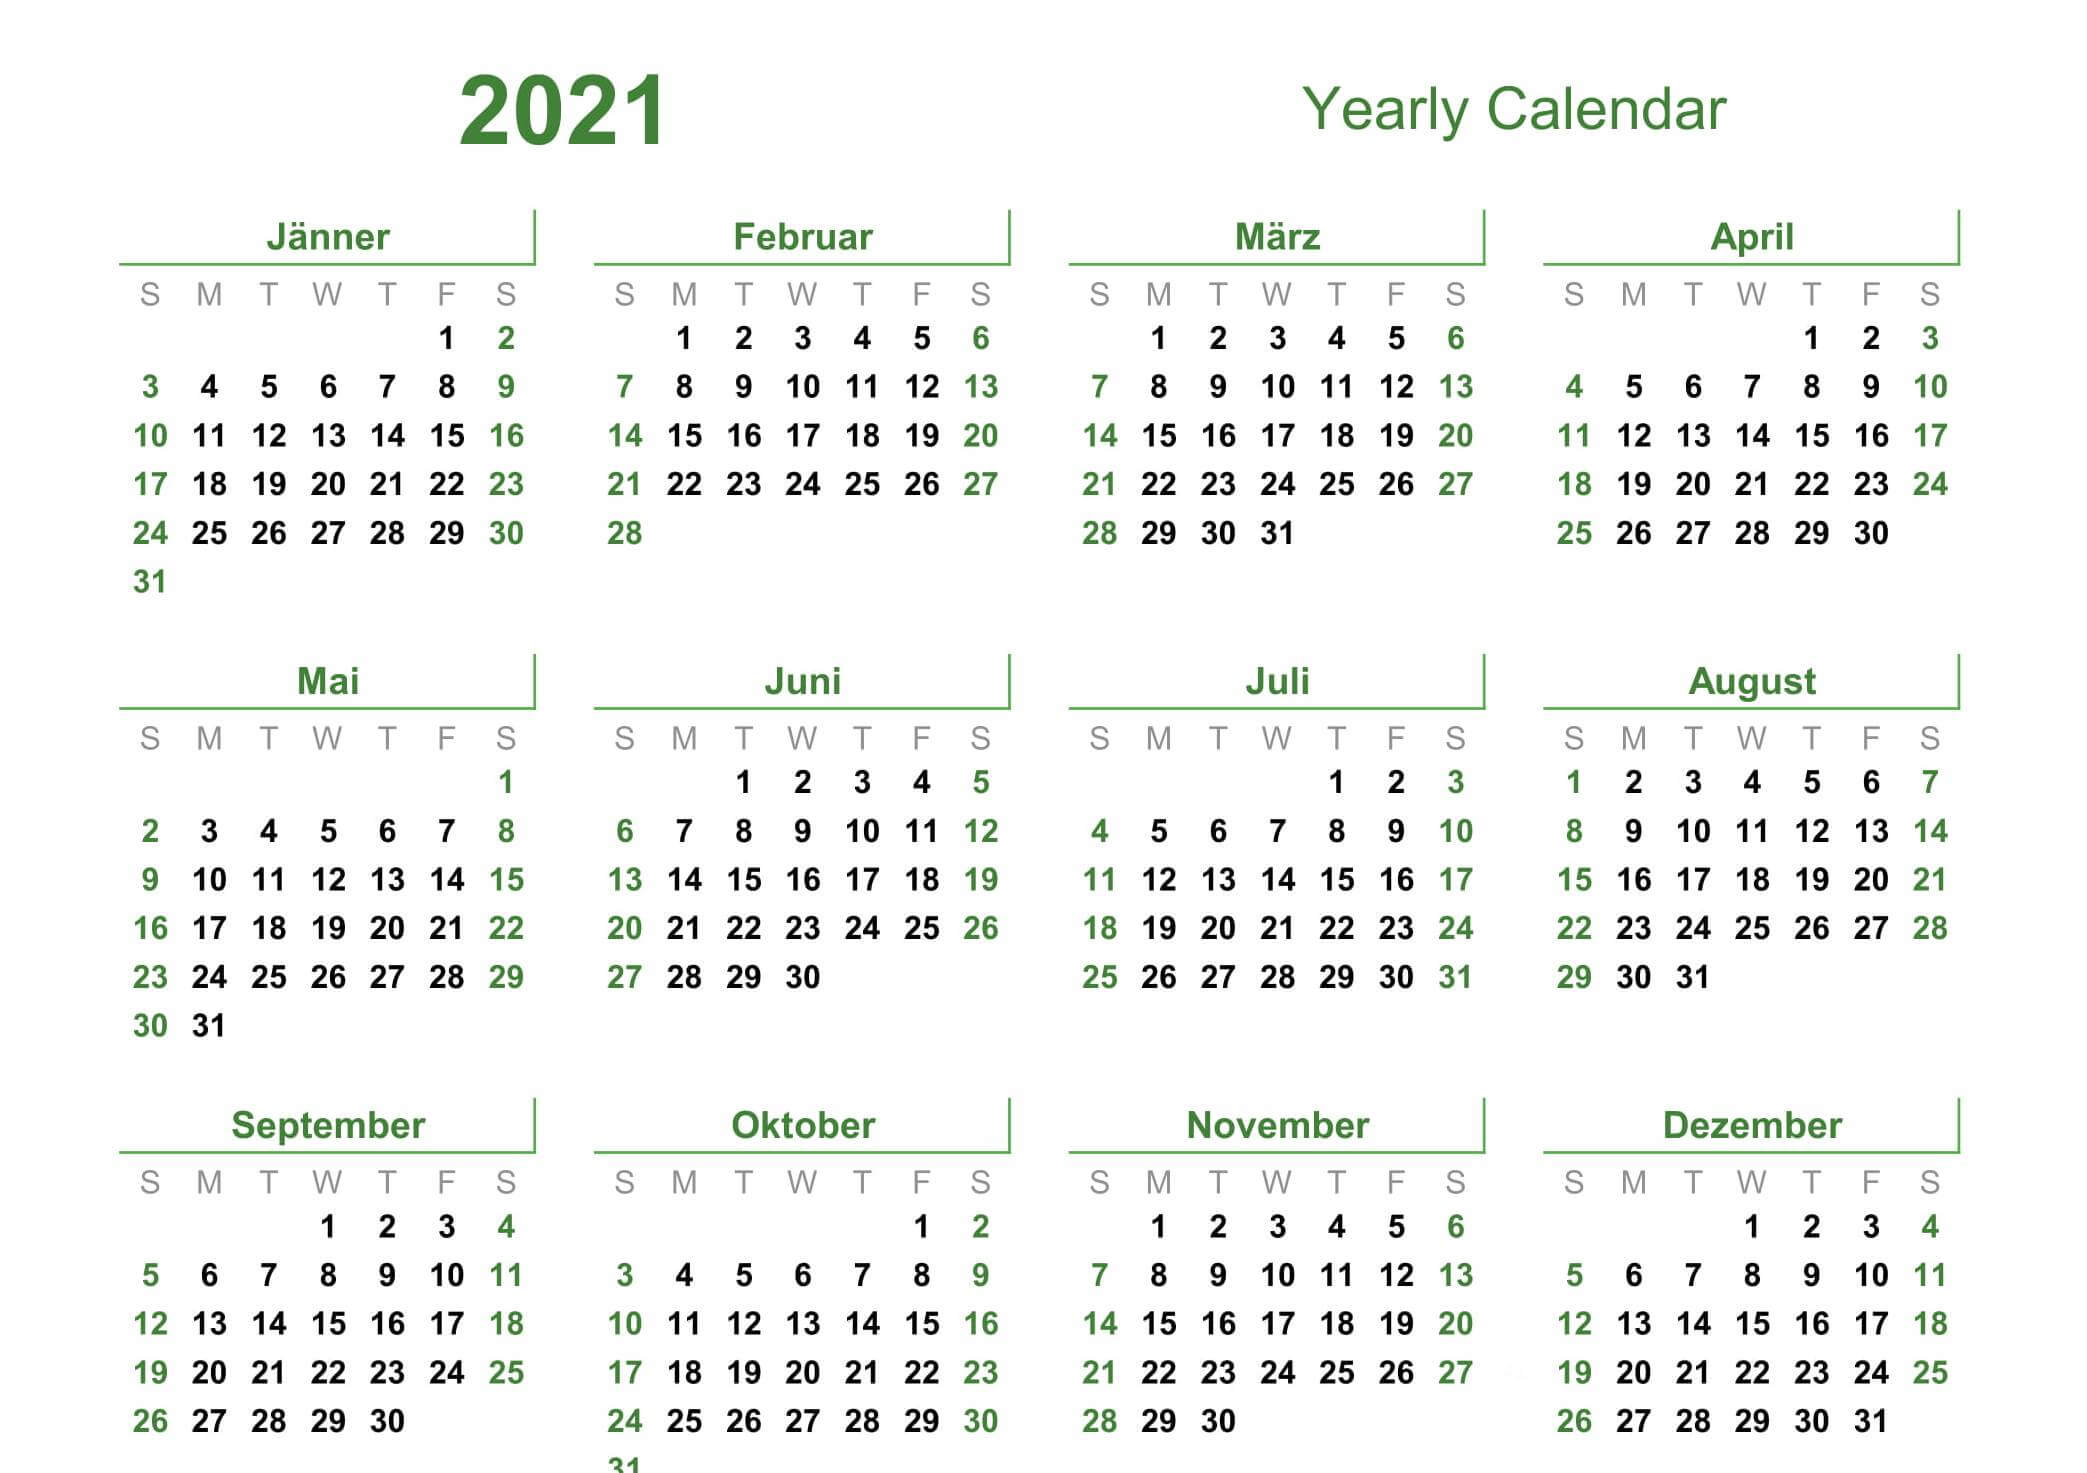 Yearly Calendar With Notes 2021 Editable Template - Set